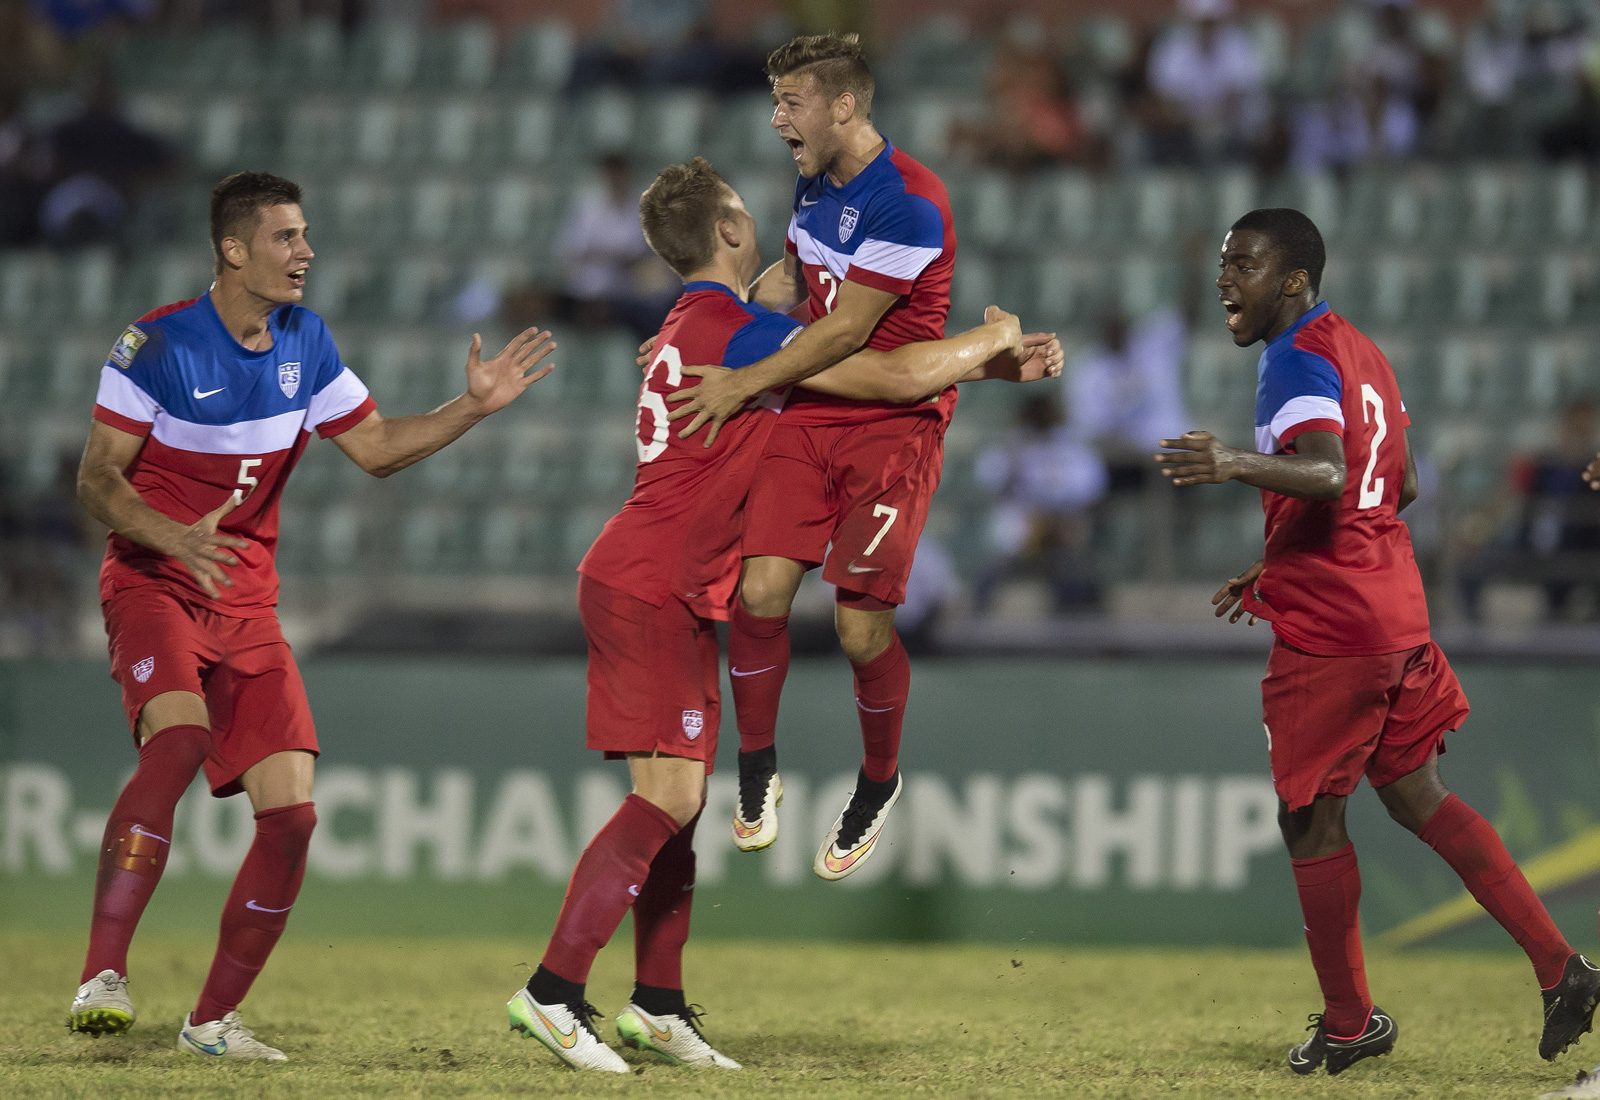 Paul Arriola (7) celebrates his goal in a World Cup qualifying playoff match vs. El Salvador. The U.S. U-20s cemented their place in the World Cup with a 2-0 win. They drew Azerbaijan